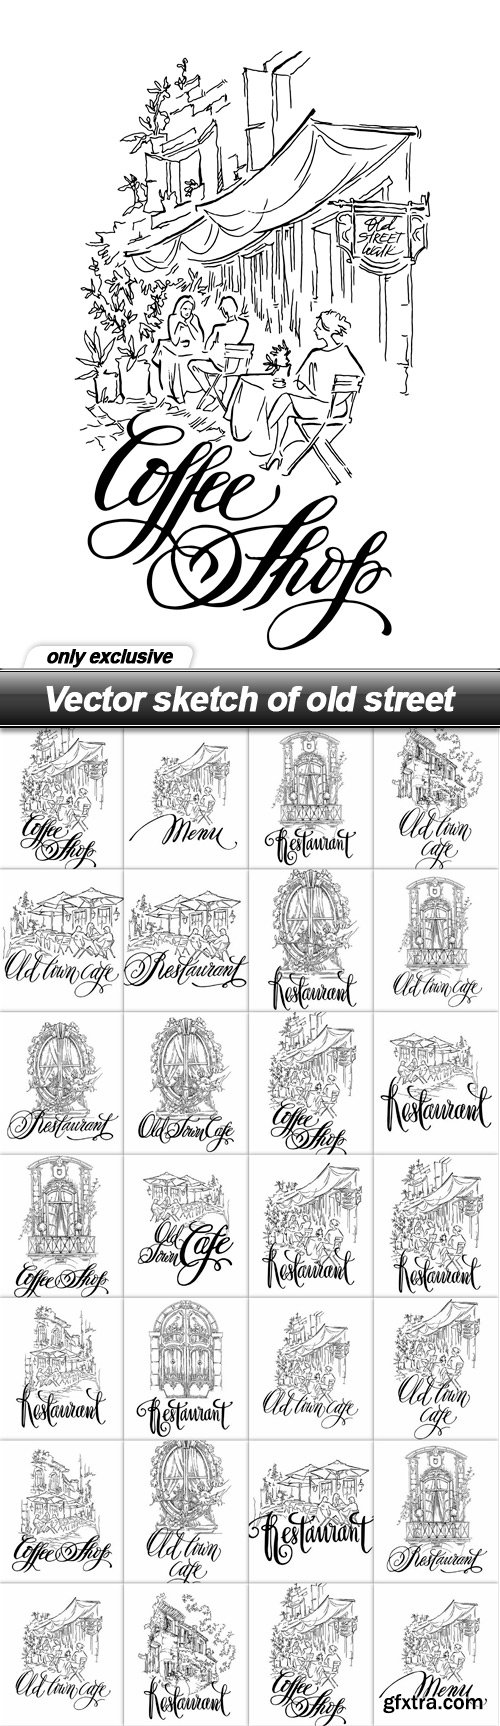 Vector sketch of old street - 26 EPS